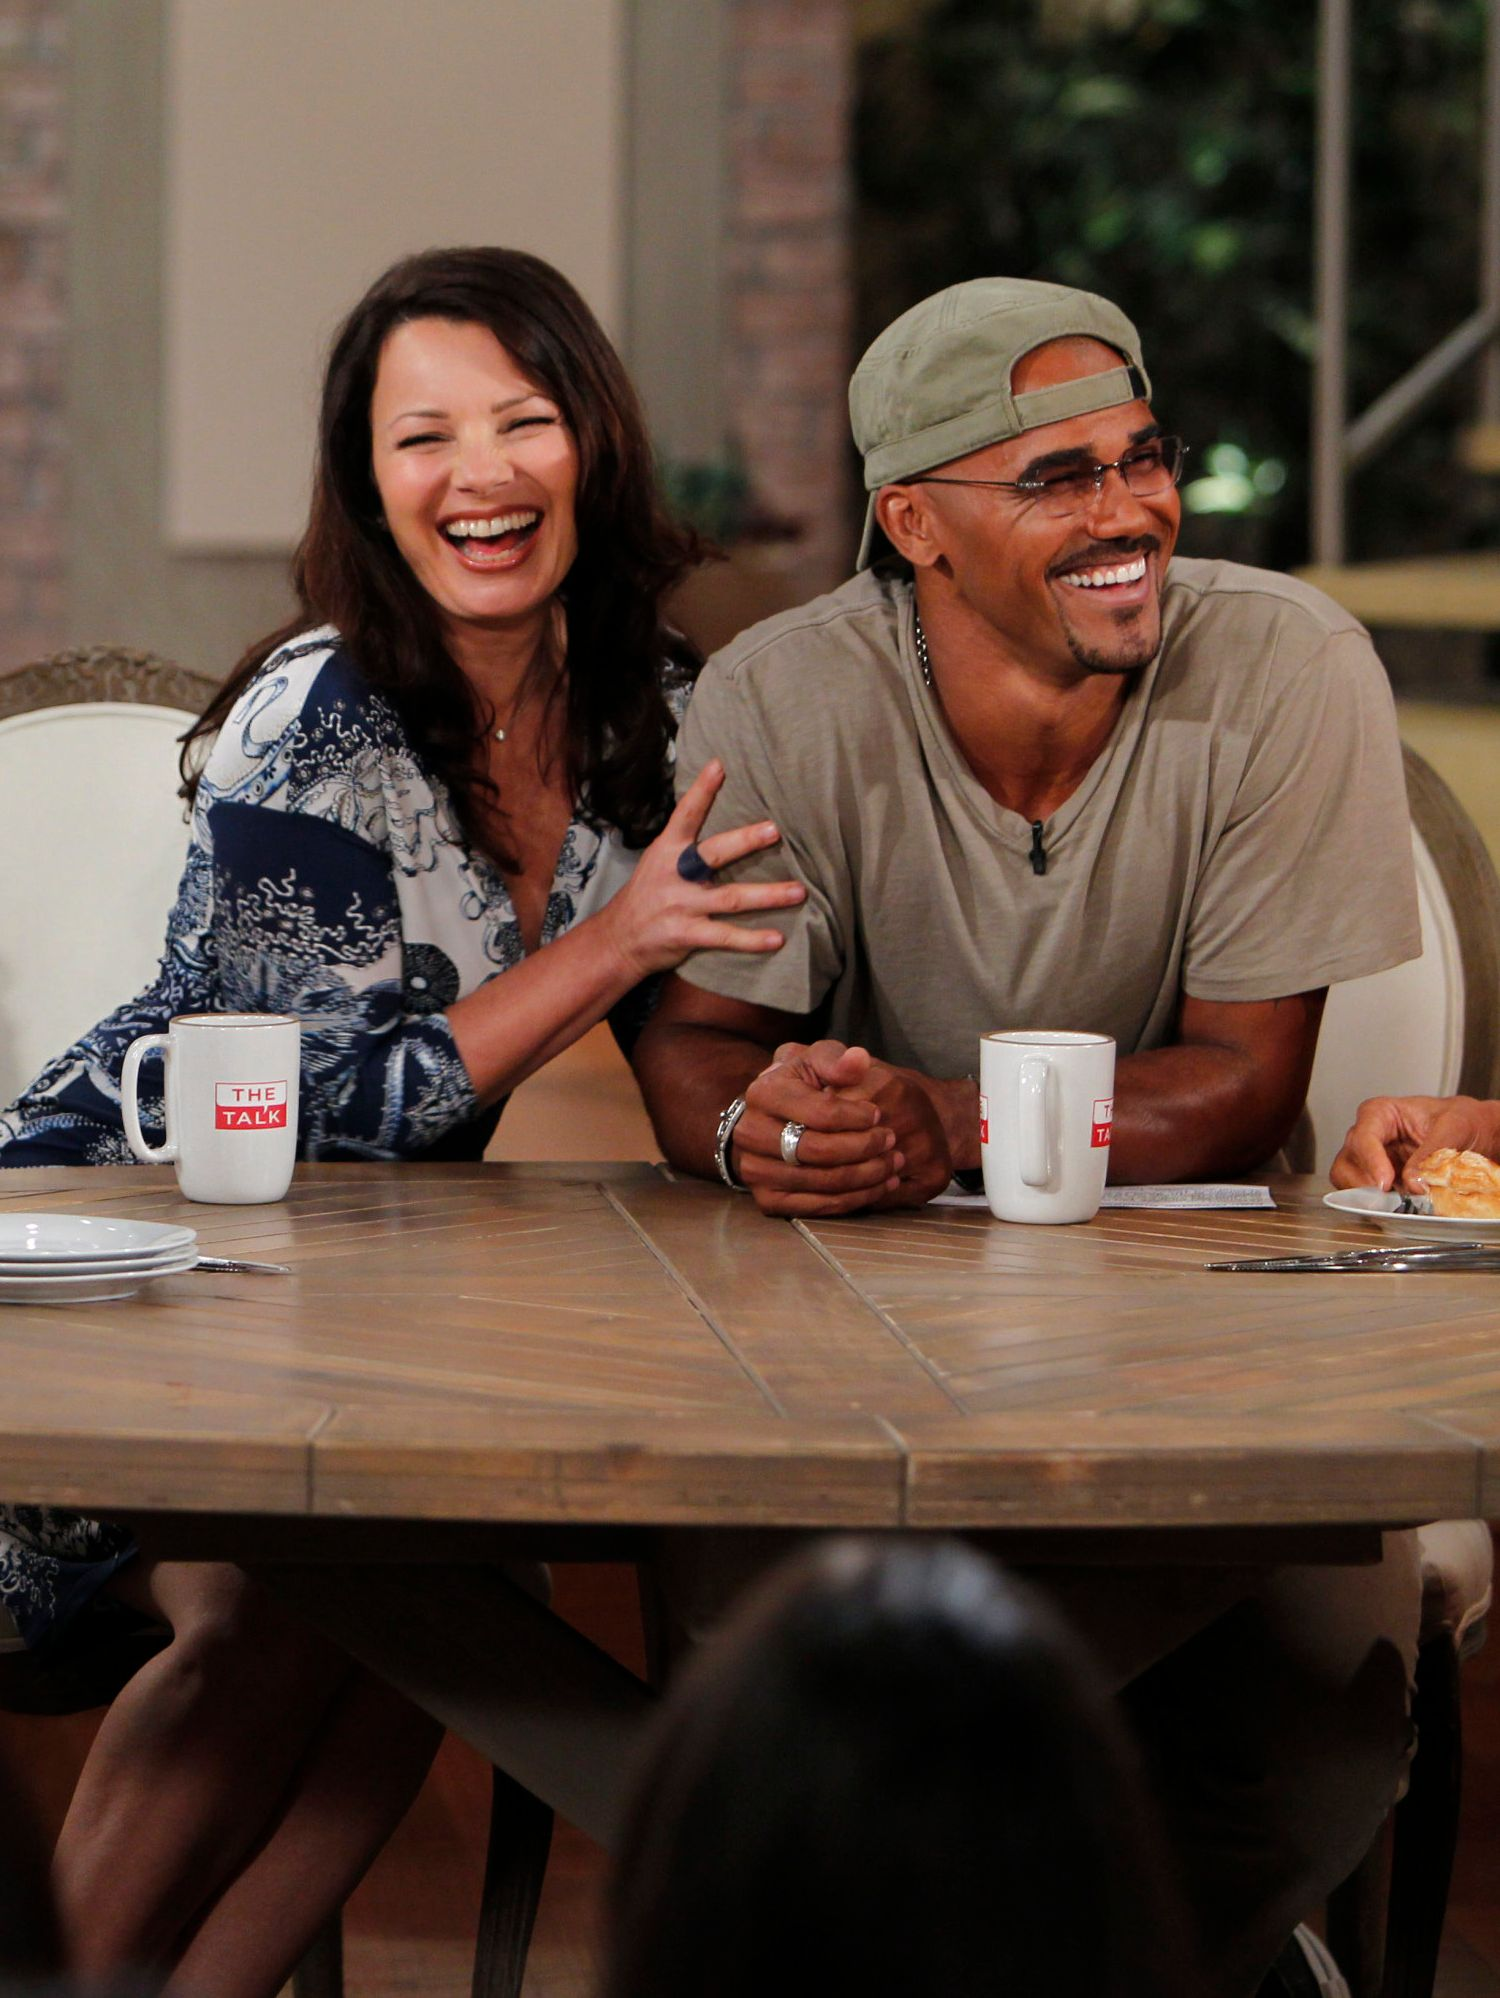 Fran Drescher and Shemar Moore on the set of The Talk